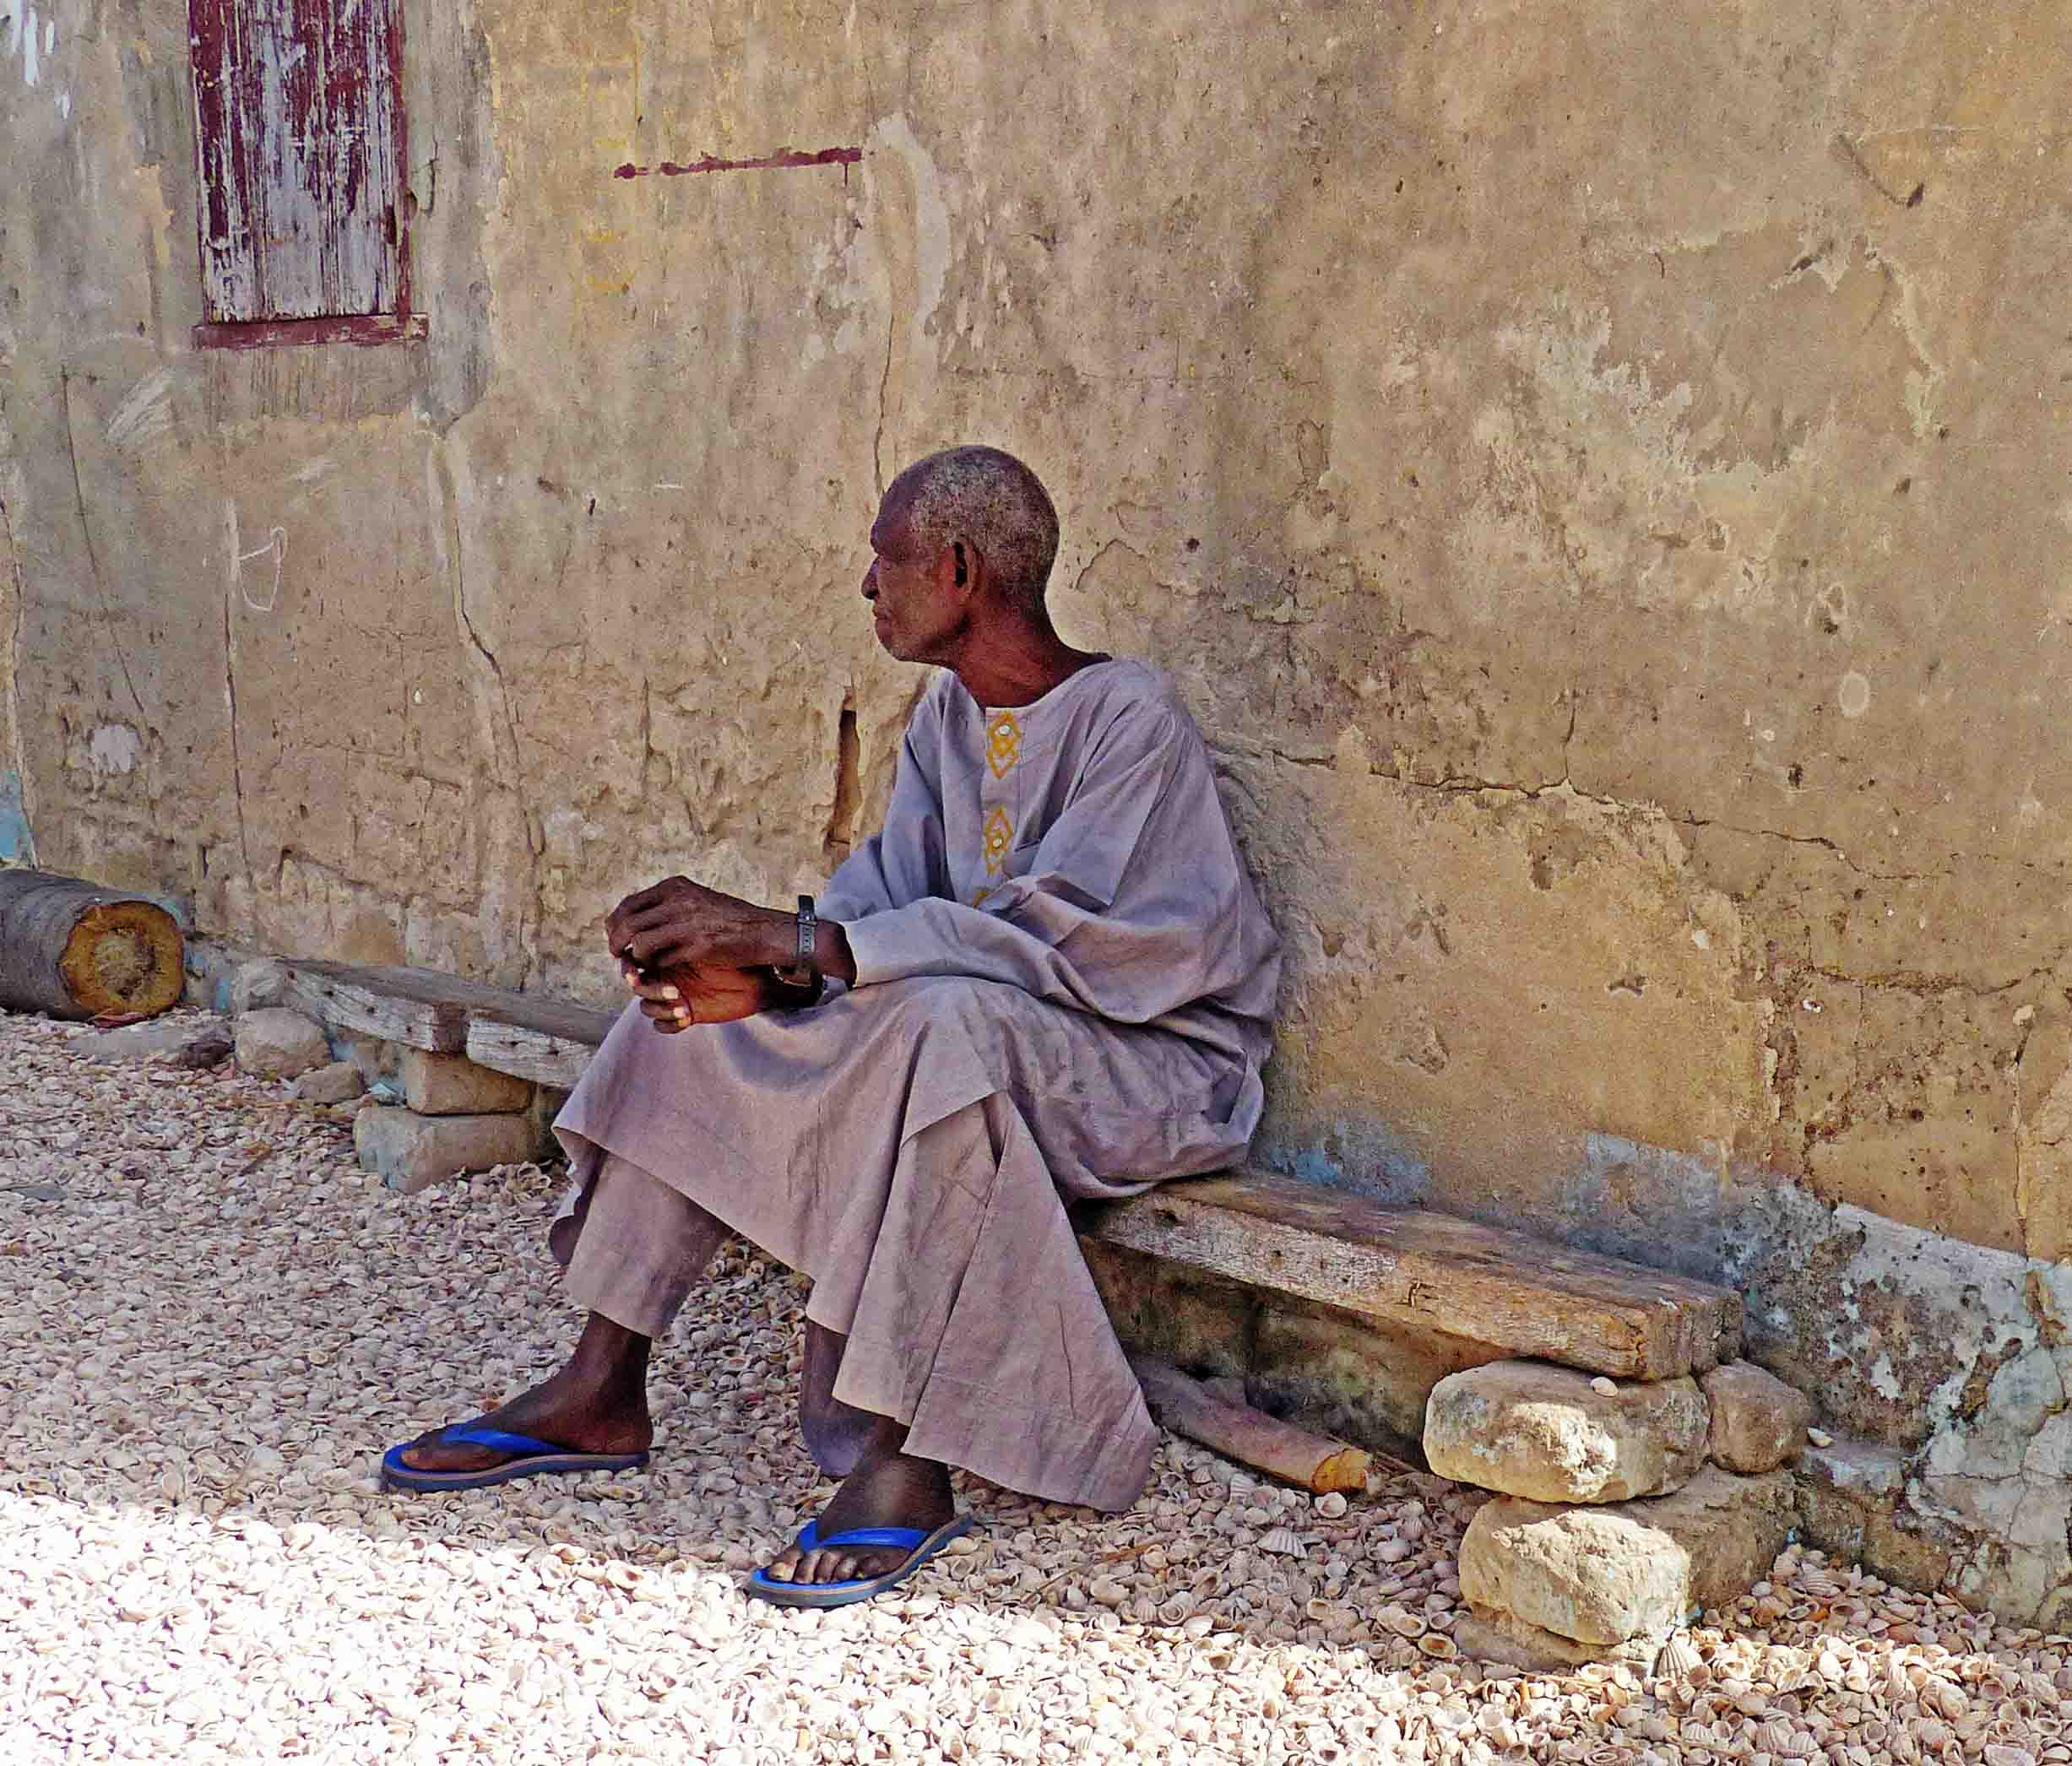 A man in African dress sitting on a bench